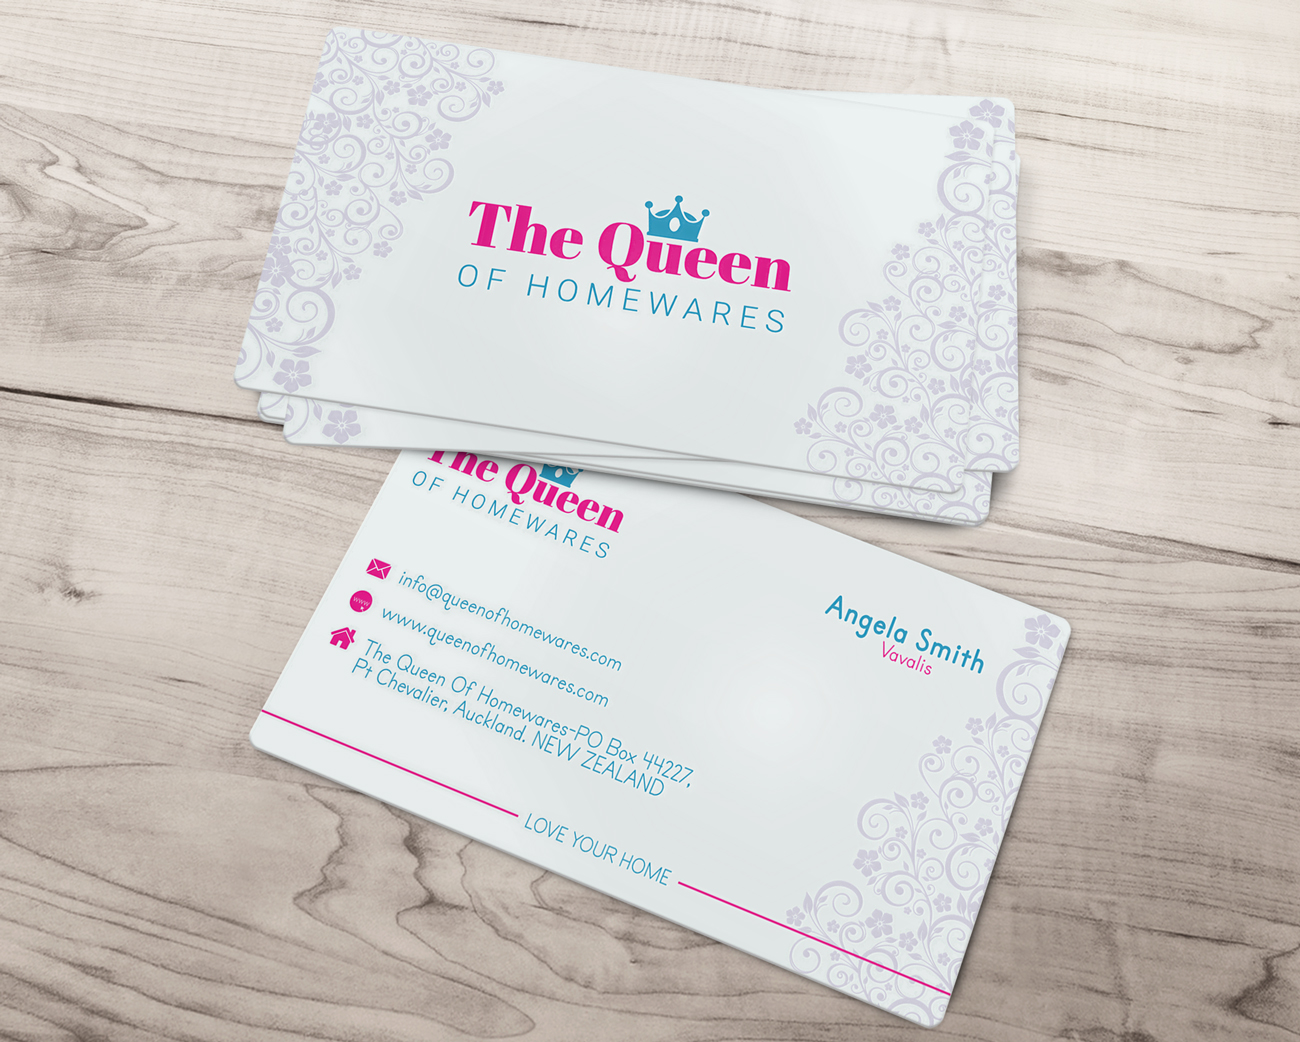 Upmarket Bold Business Card Design For Queen Of Homewares By 43775 17687905  3202669 8cdcdb28 Image 17687905. Kitchen Party Invitation Cards Design